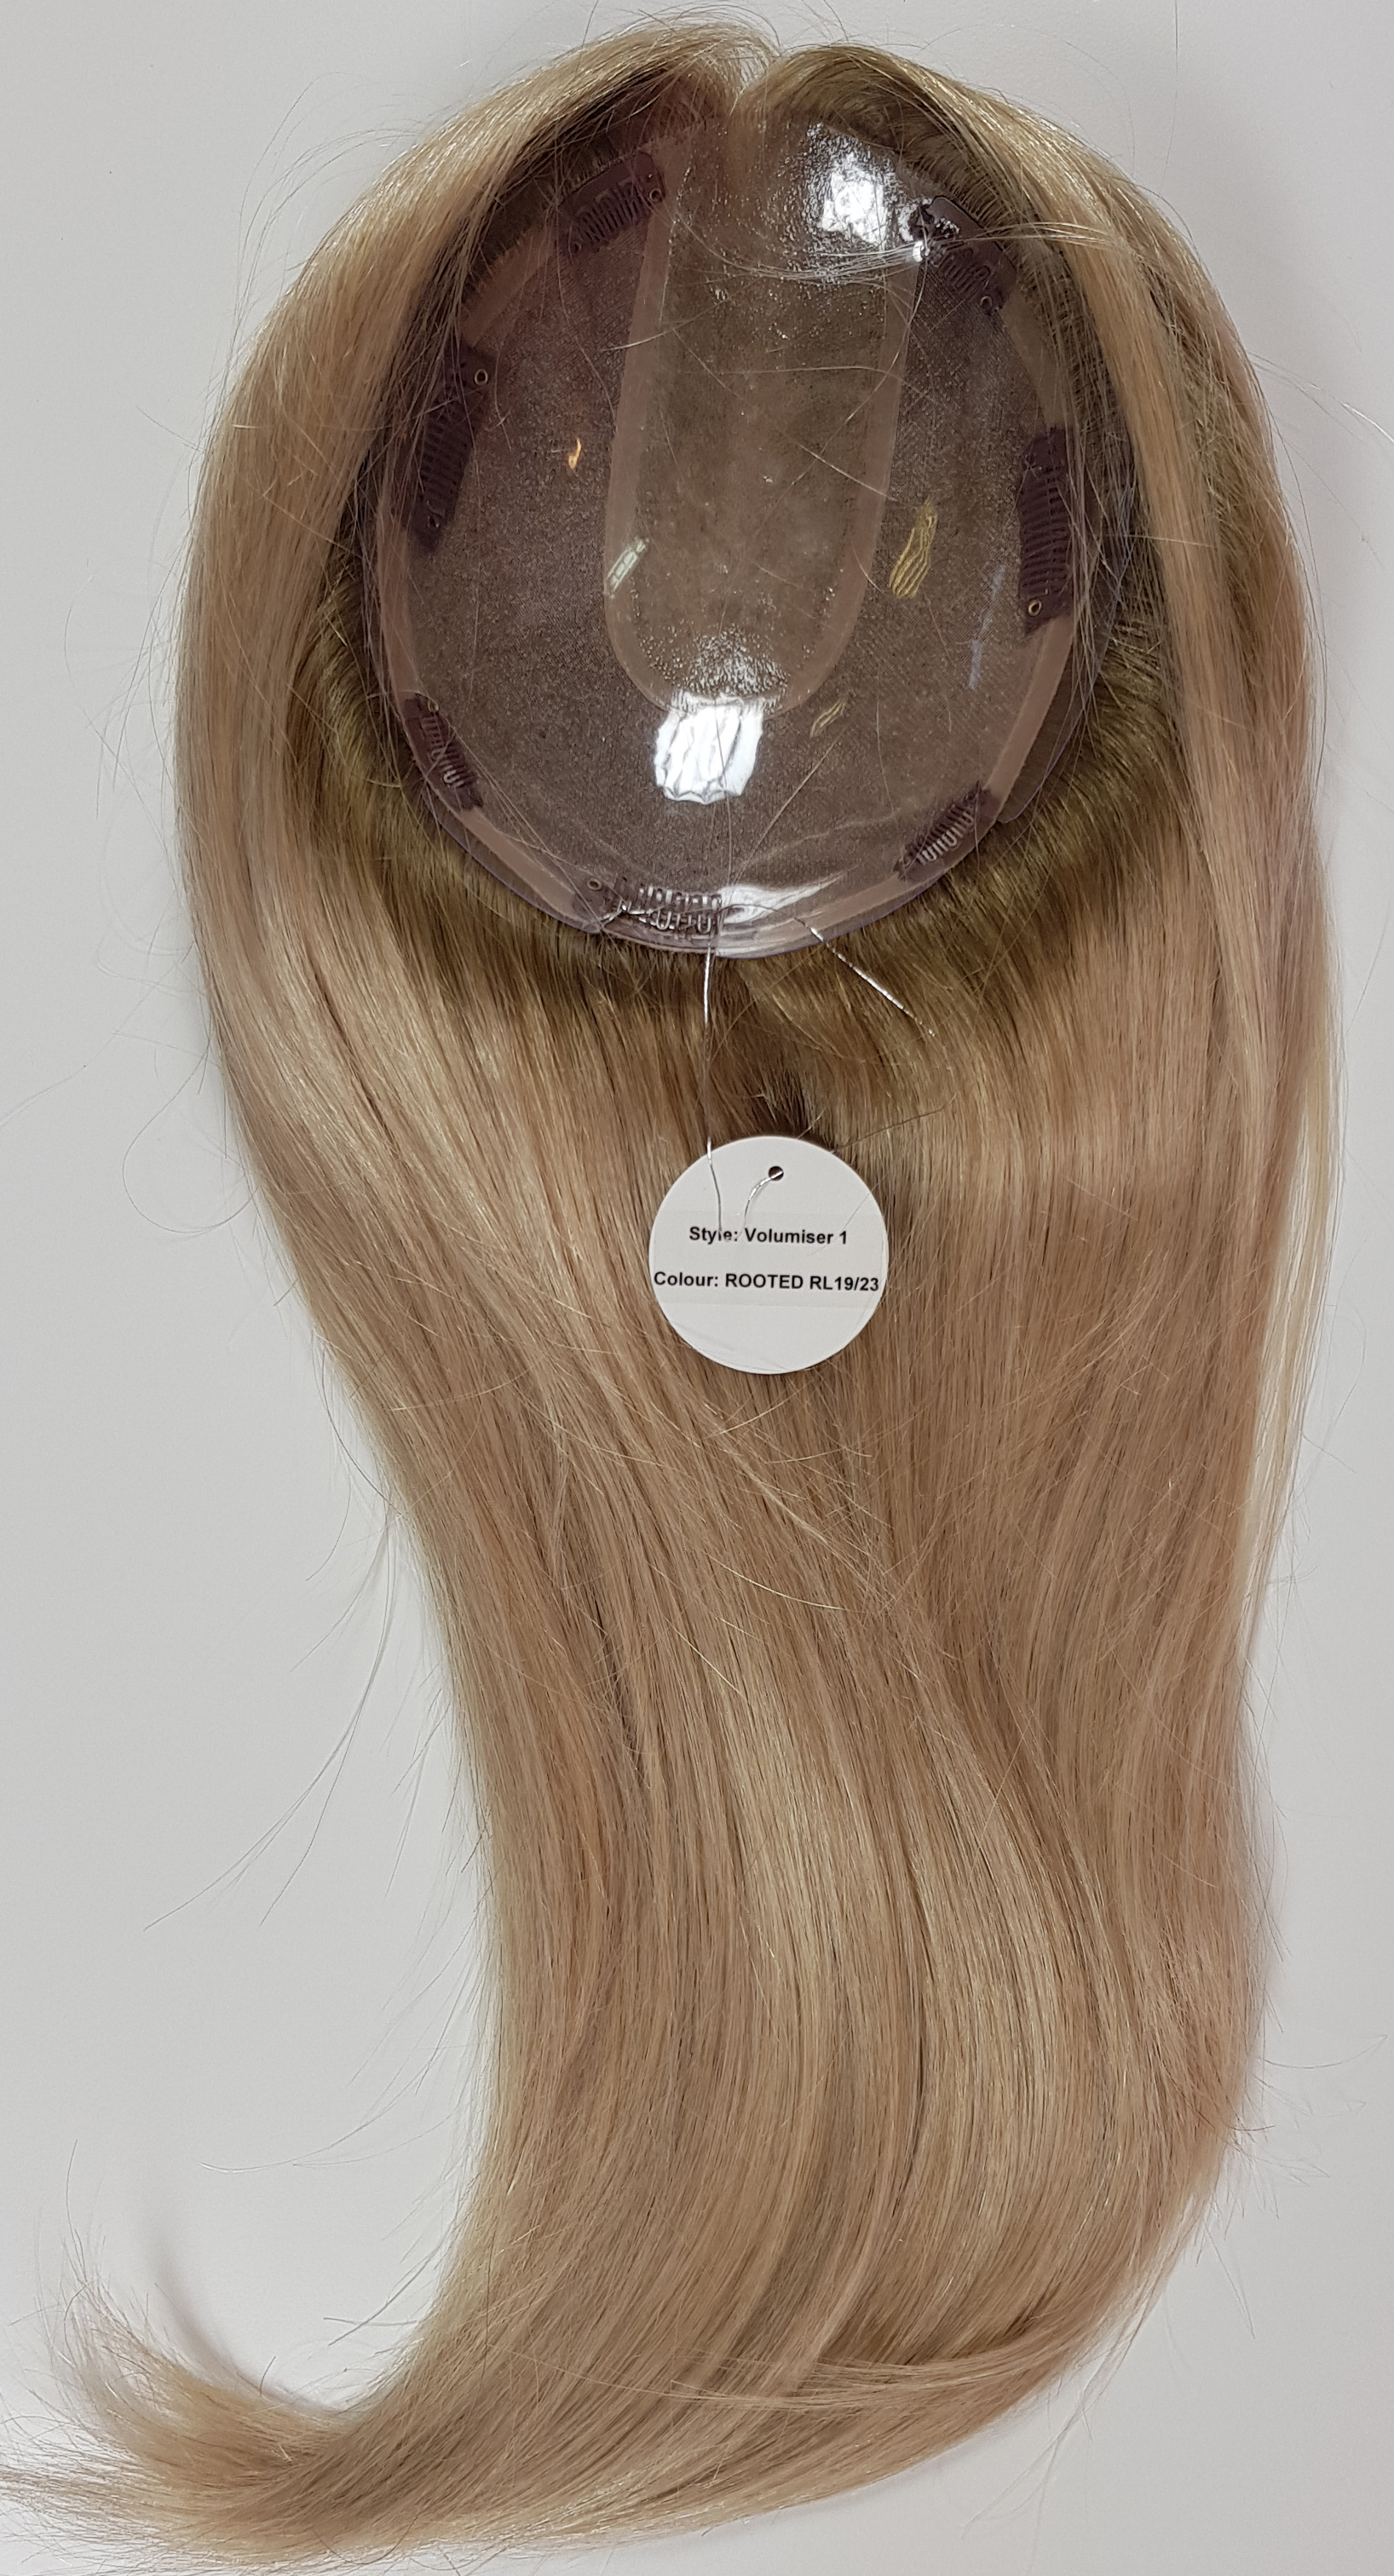 Hair Toppers Style Juliet Colour Rooted RL19-23